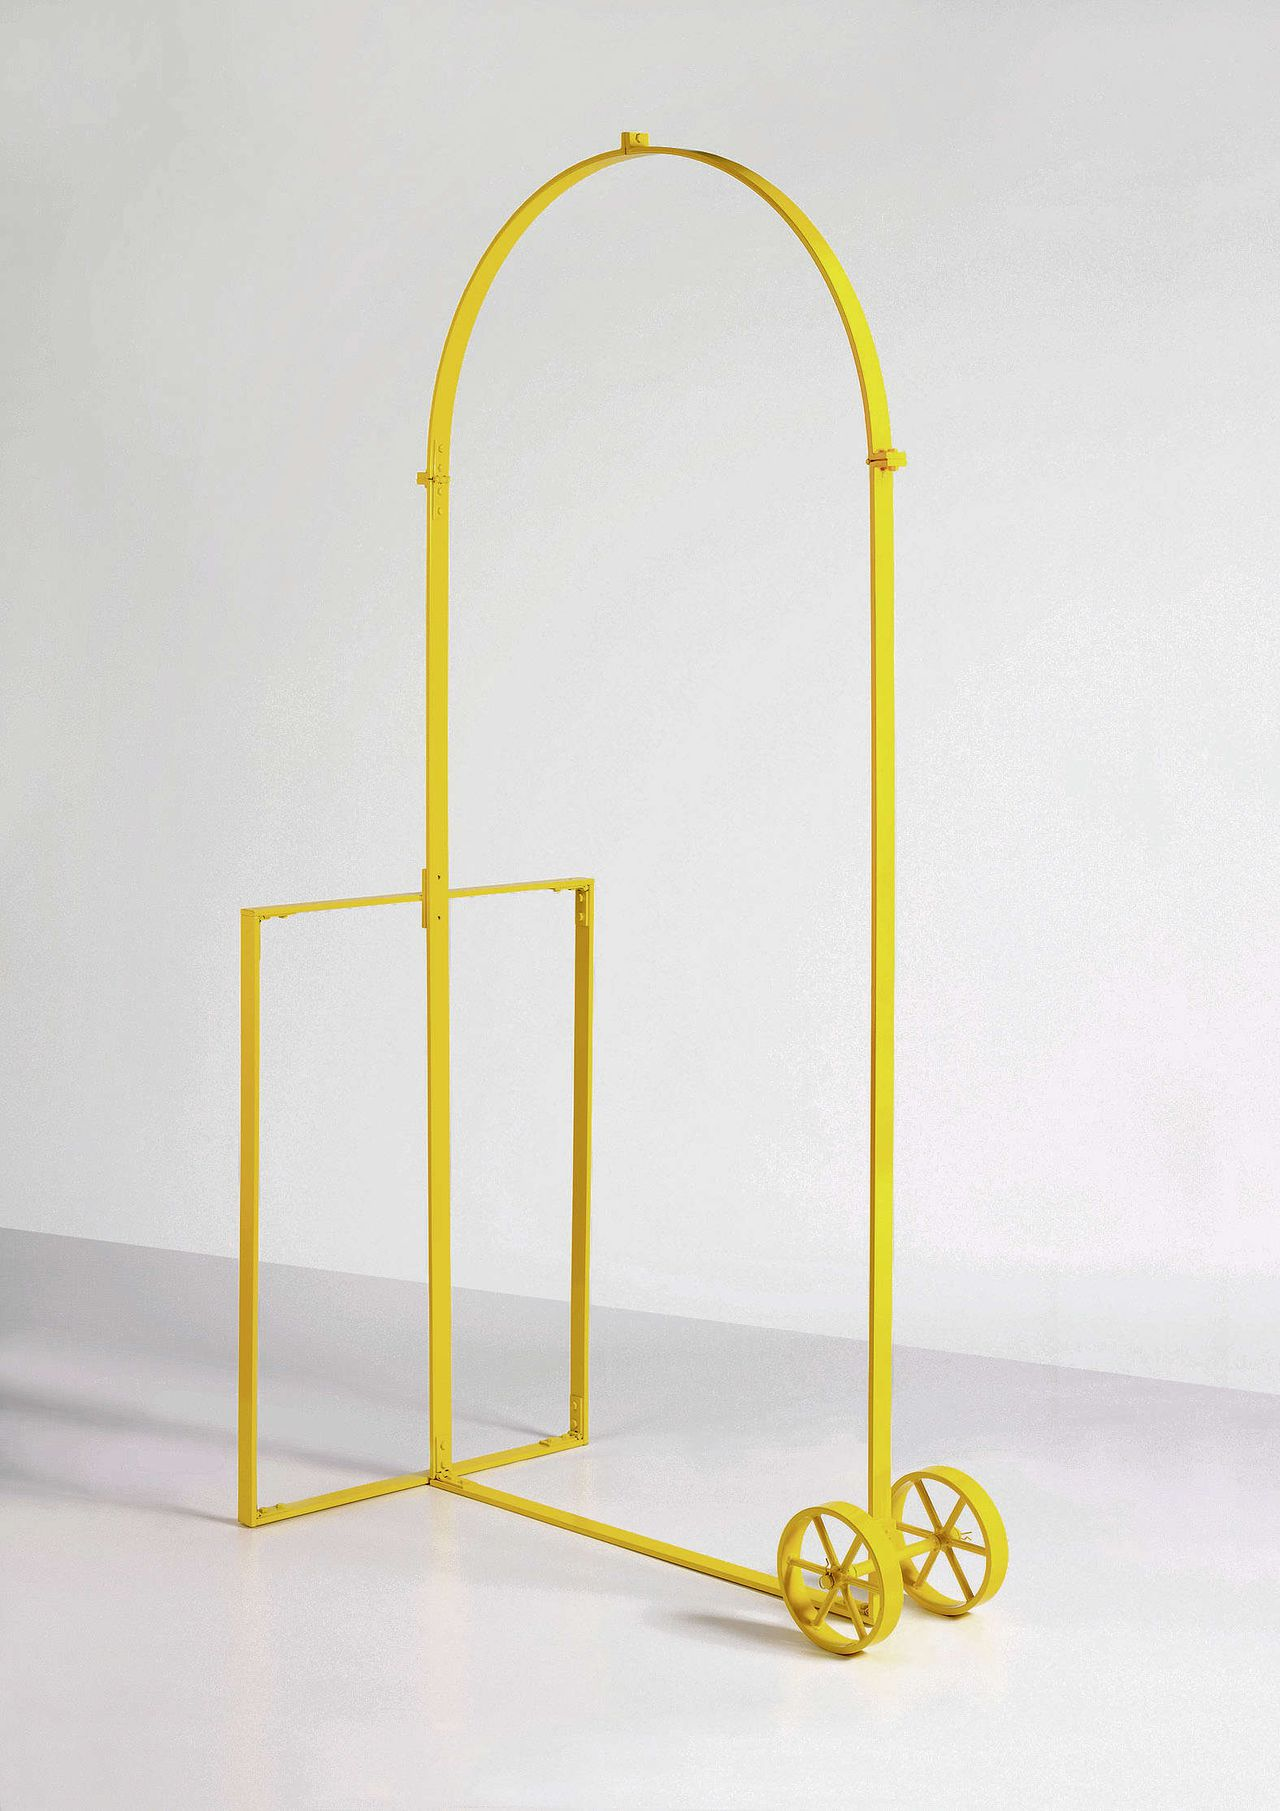 Jimmie Durham: Arc de Triomphe for Personal Use (Yellow), 2007